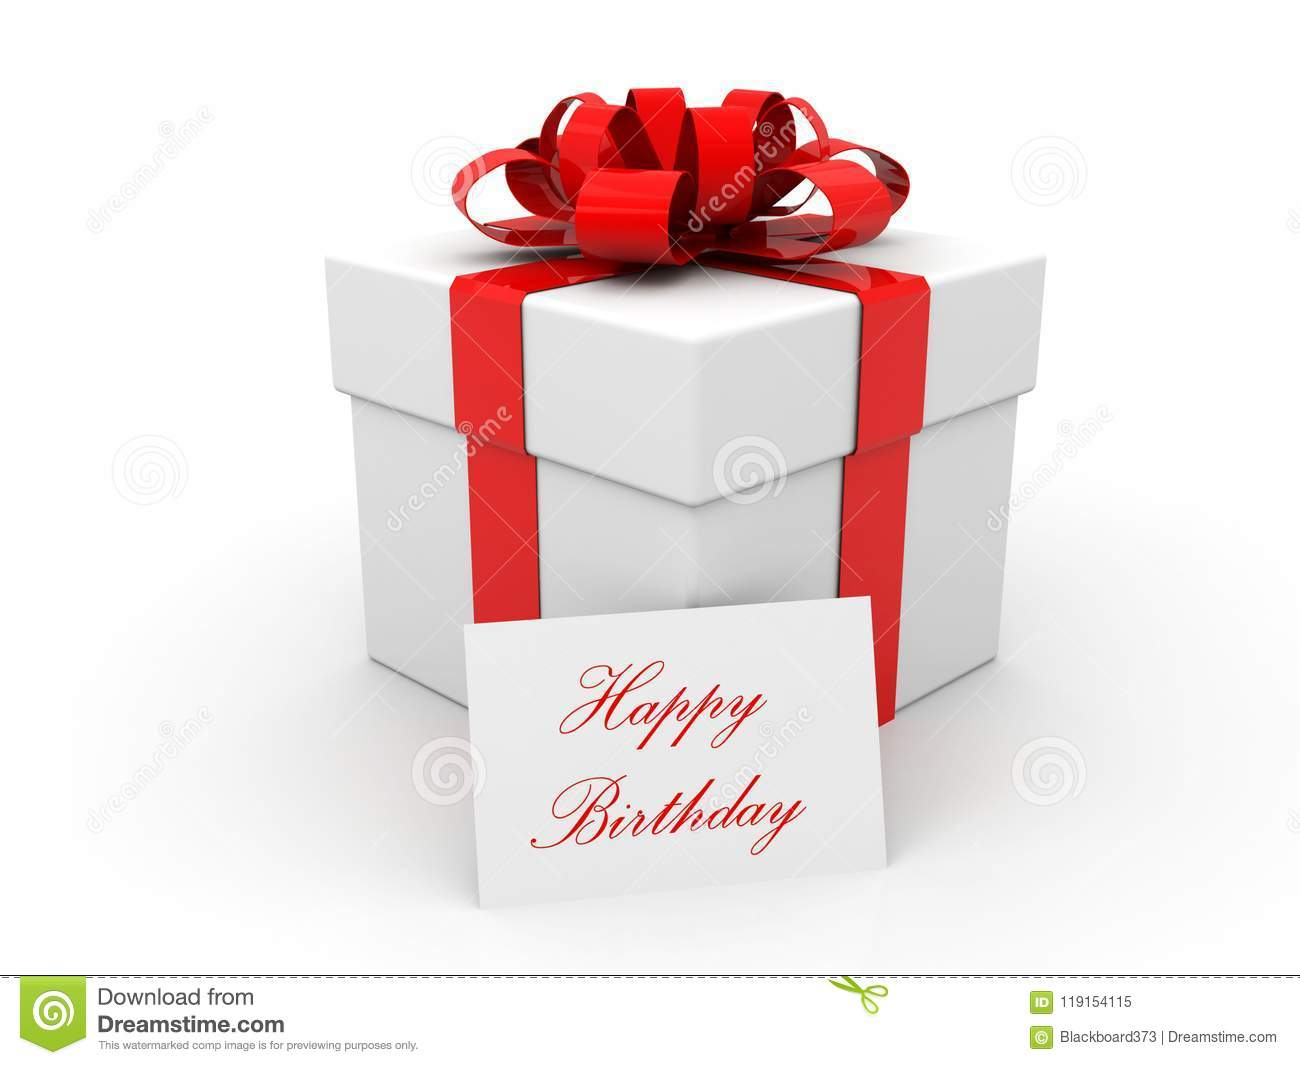 Happy Birthday Gift Box Over White Background 3d Illustration